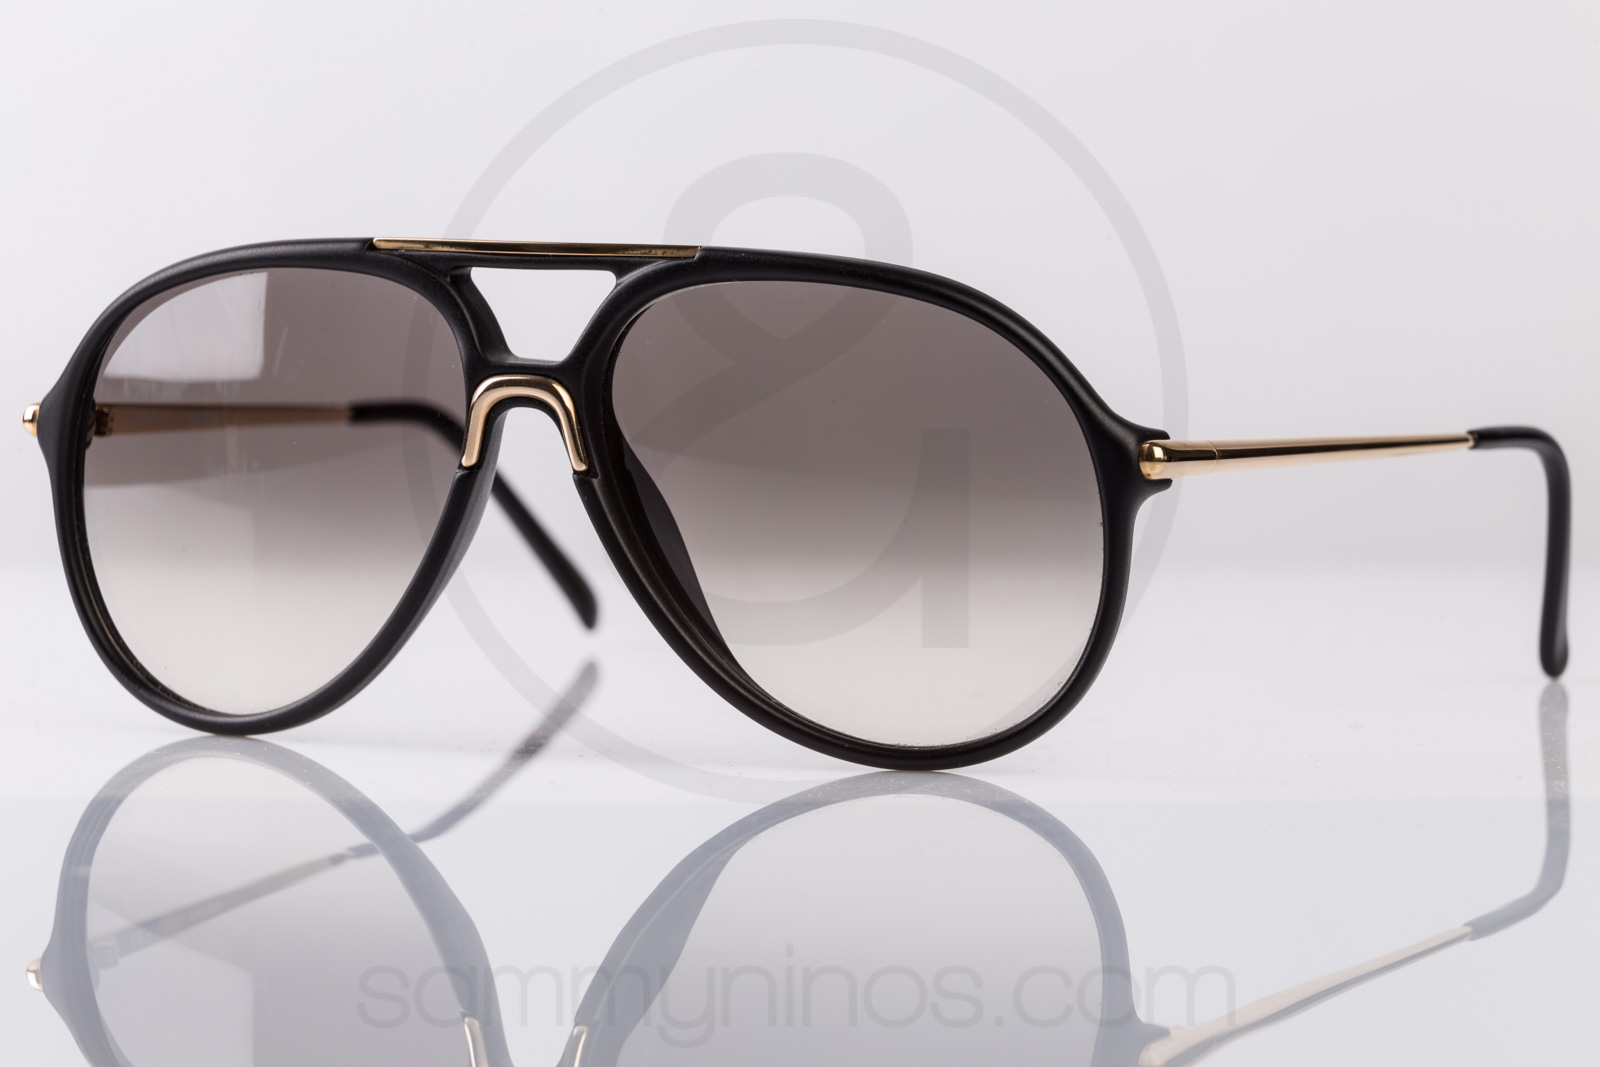 Movado Sunglasses Pictures to Pin on Pinterest - ThePinsta